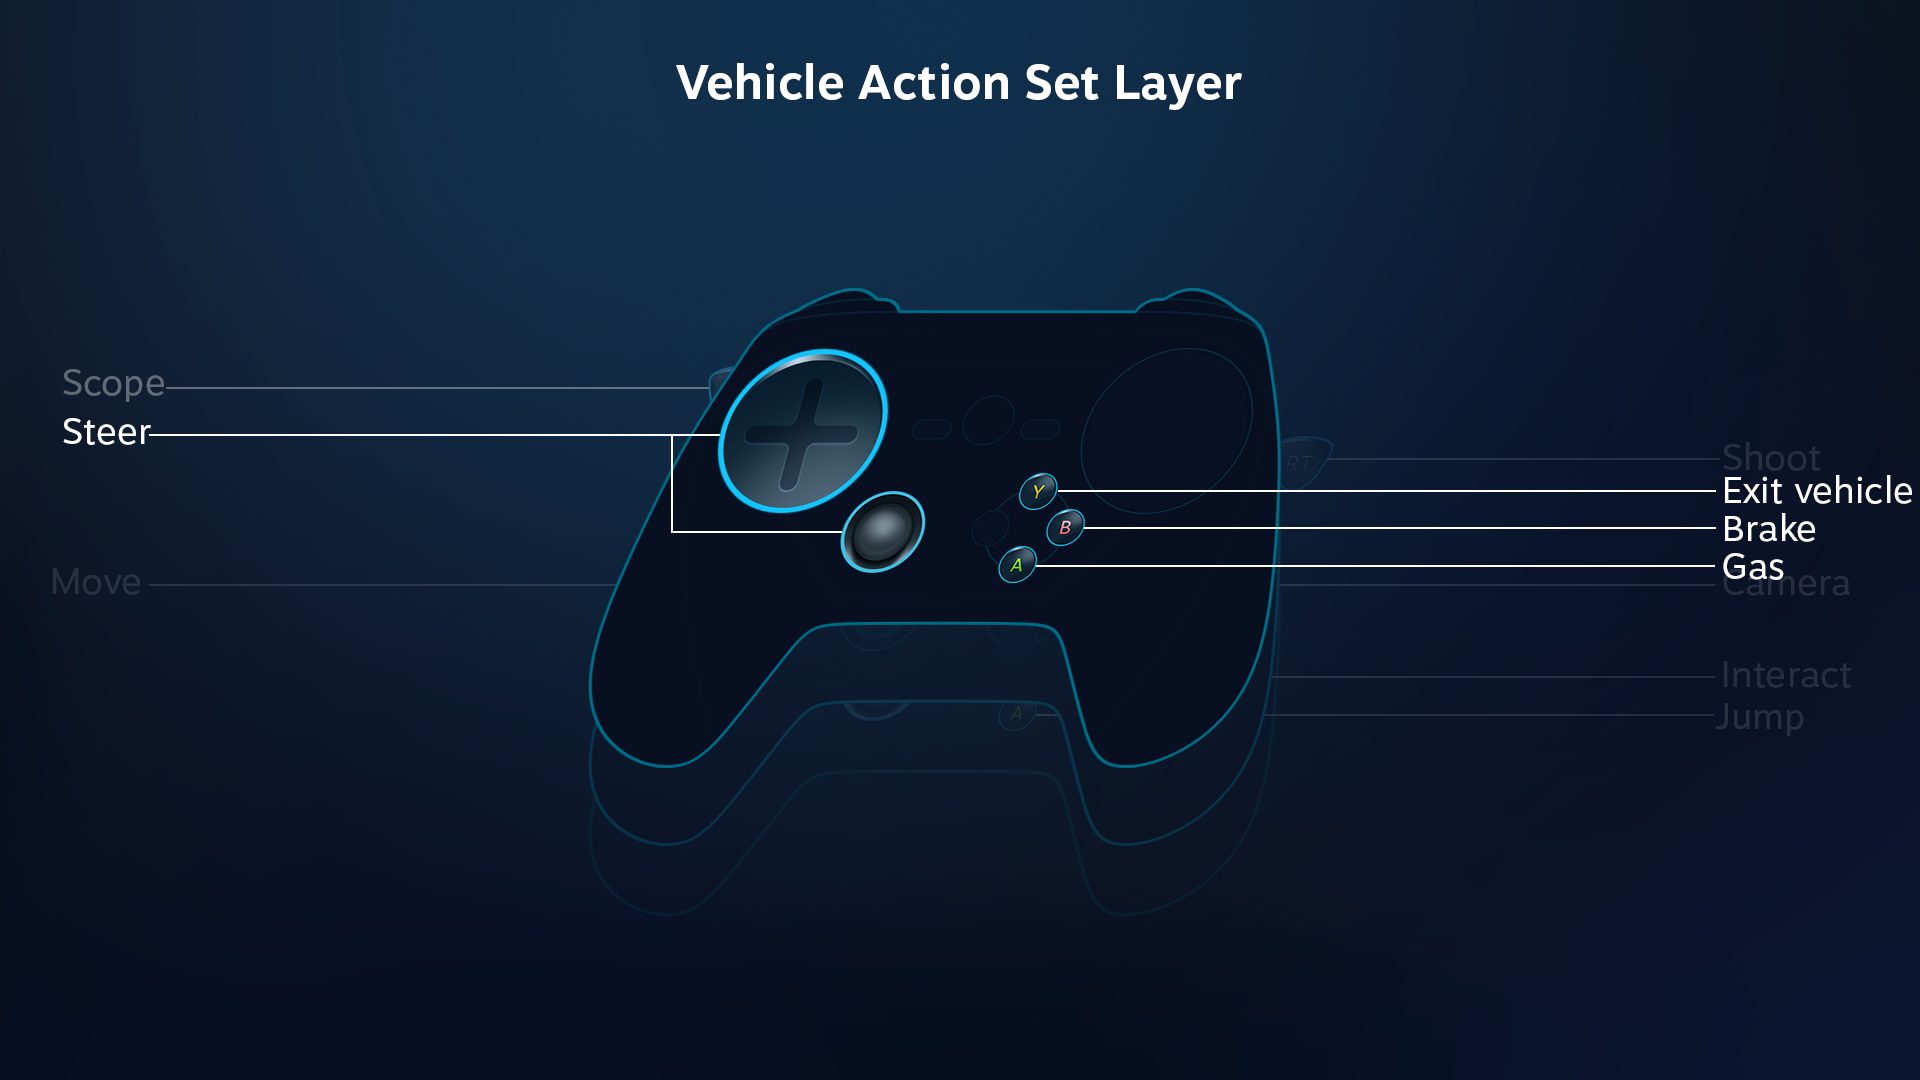 action_set_layers_vehicle_1.png